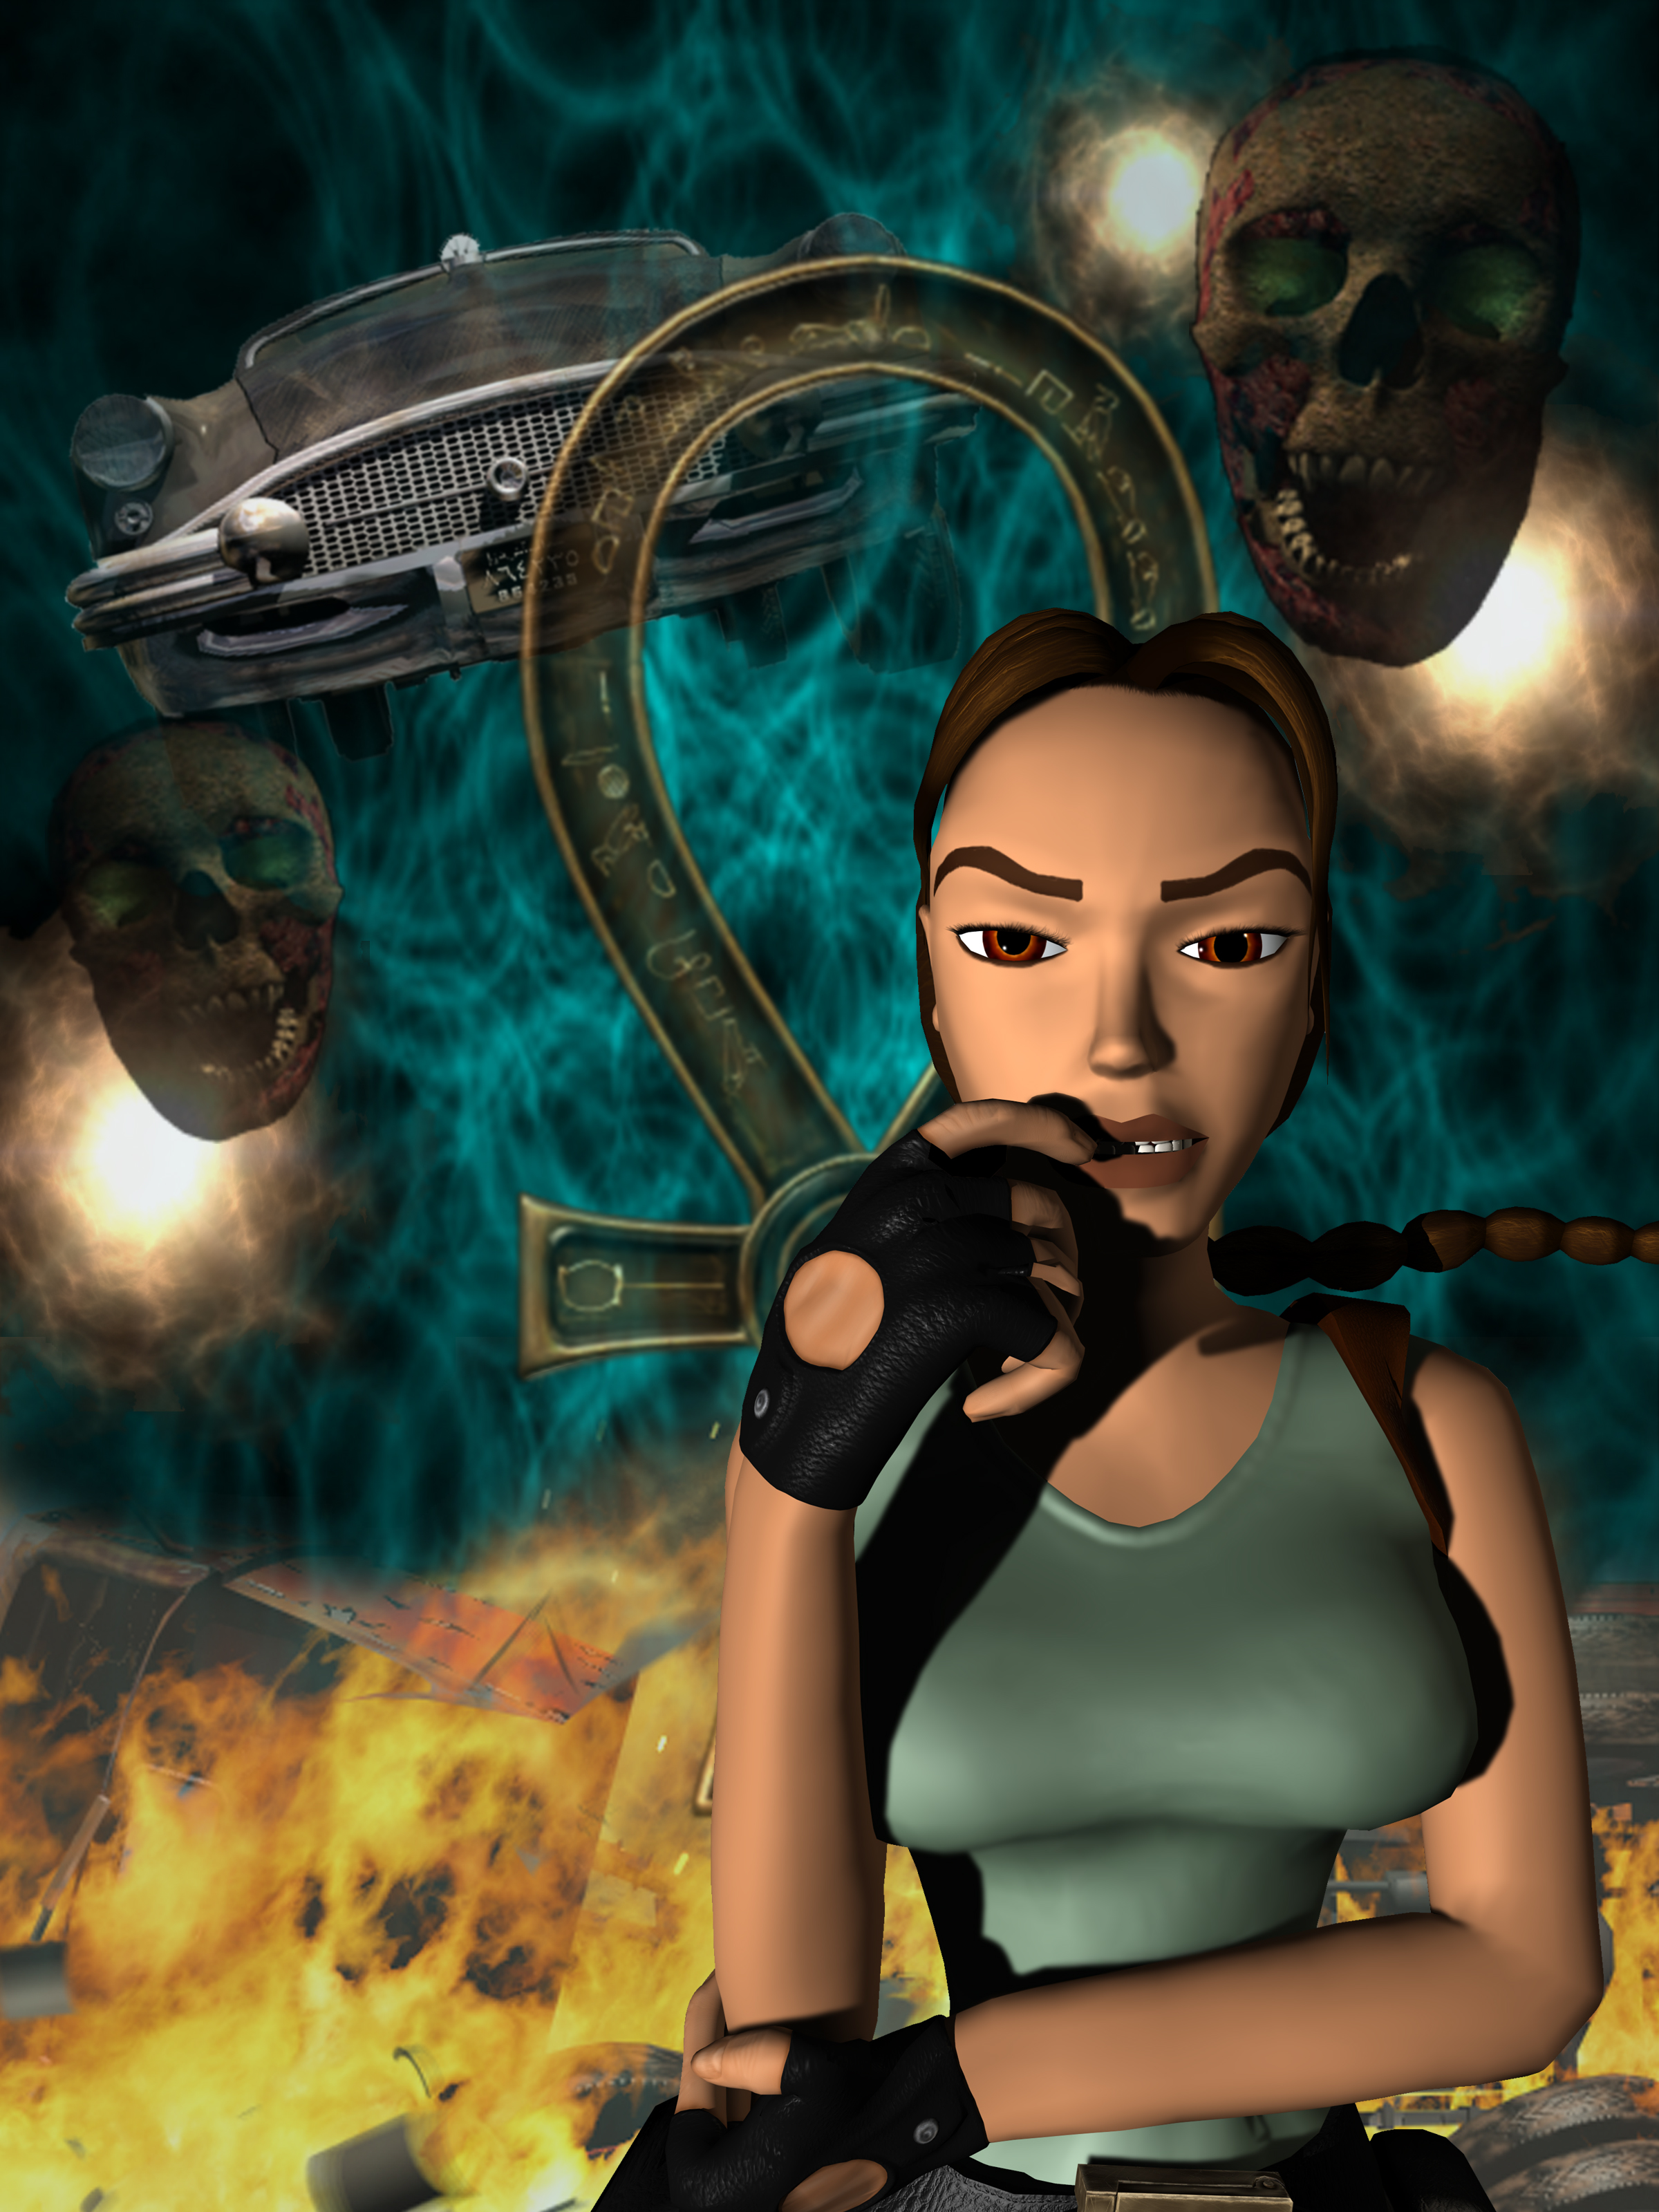 Tomb Raider The Last Revelation 1999 Promotional Art Mobygames